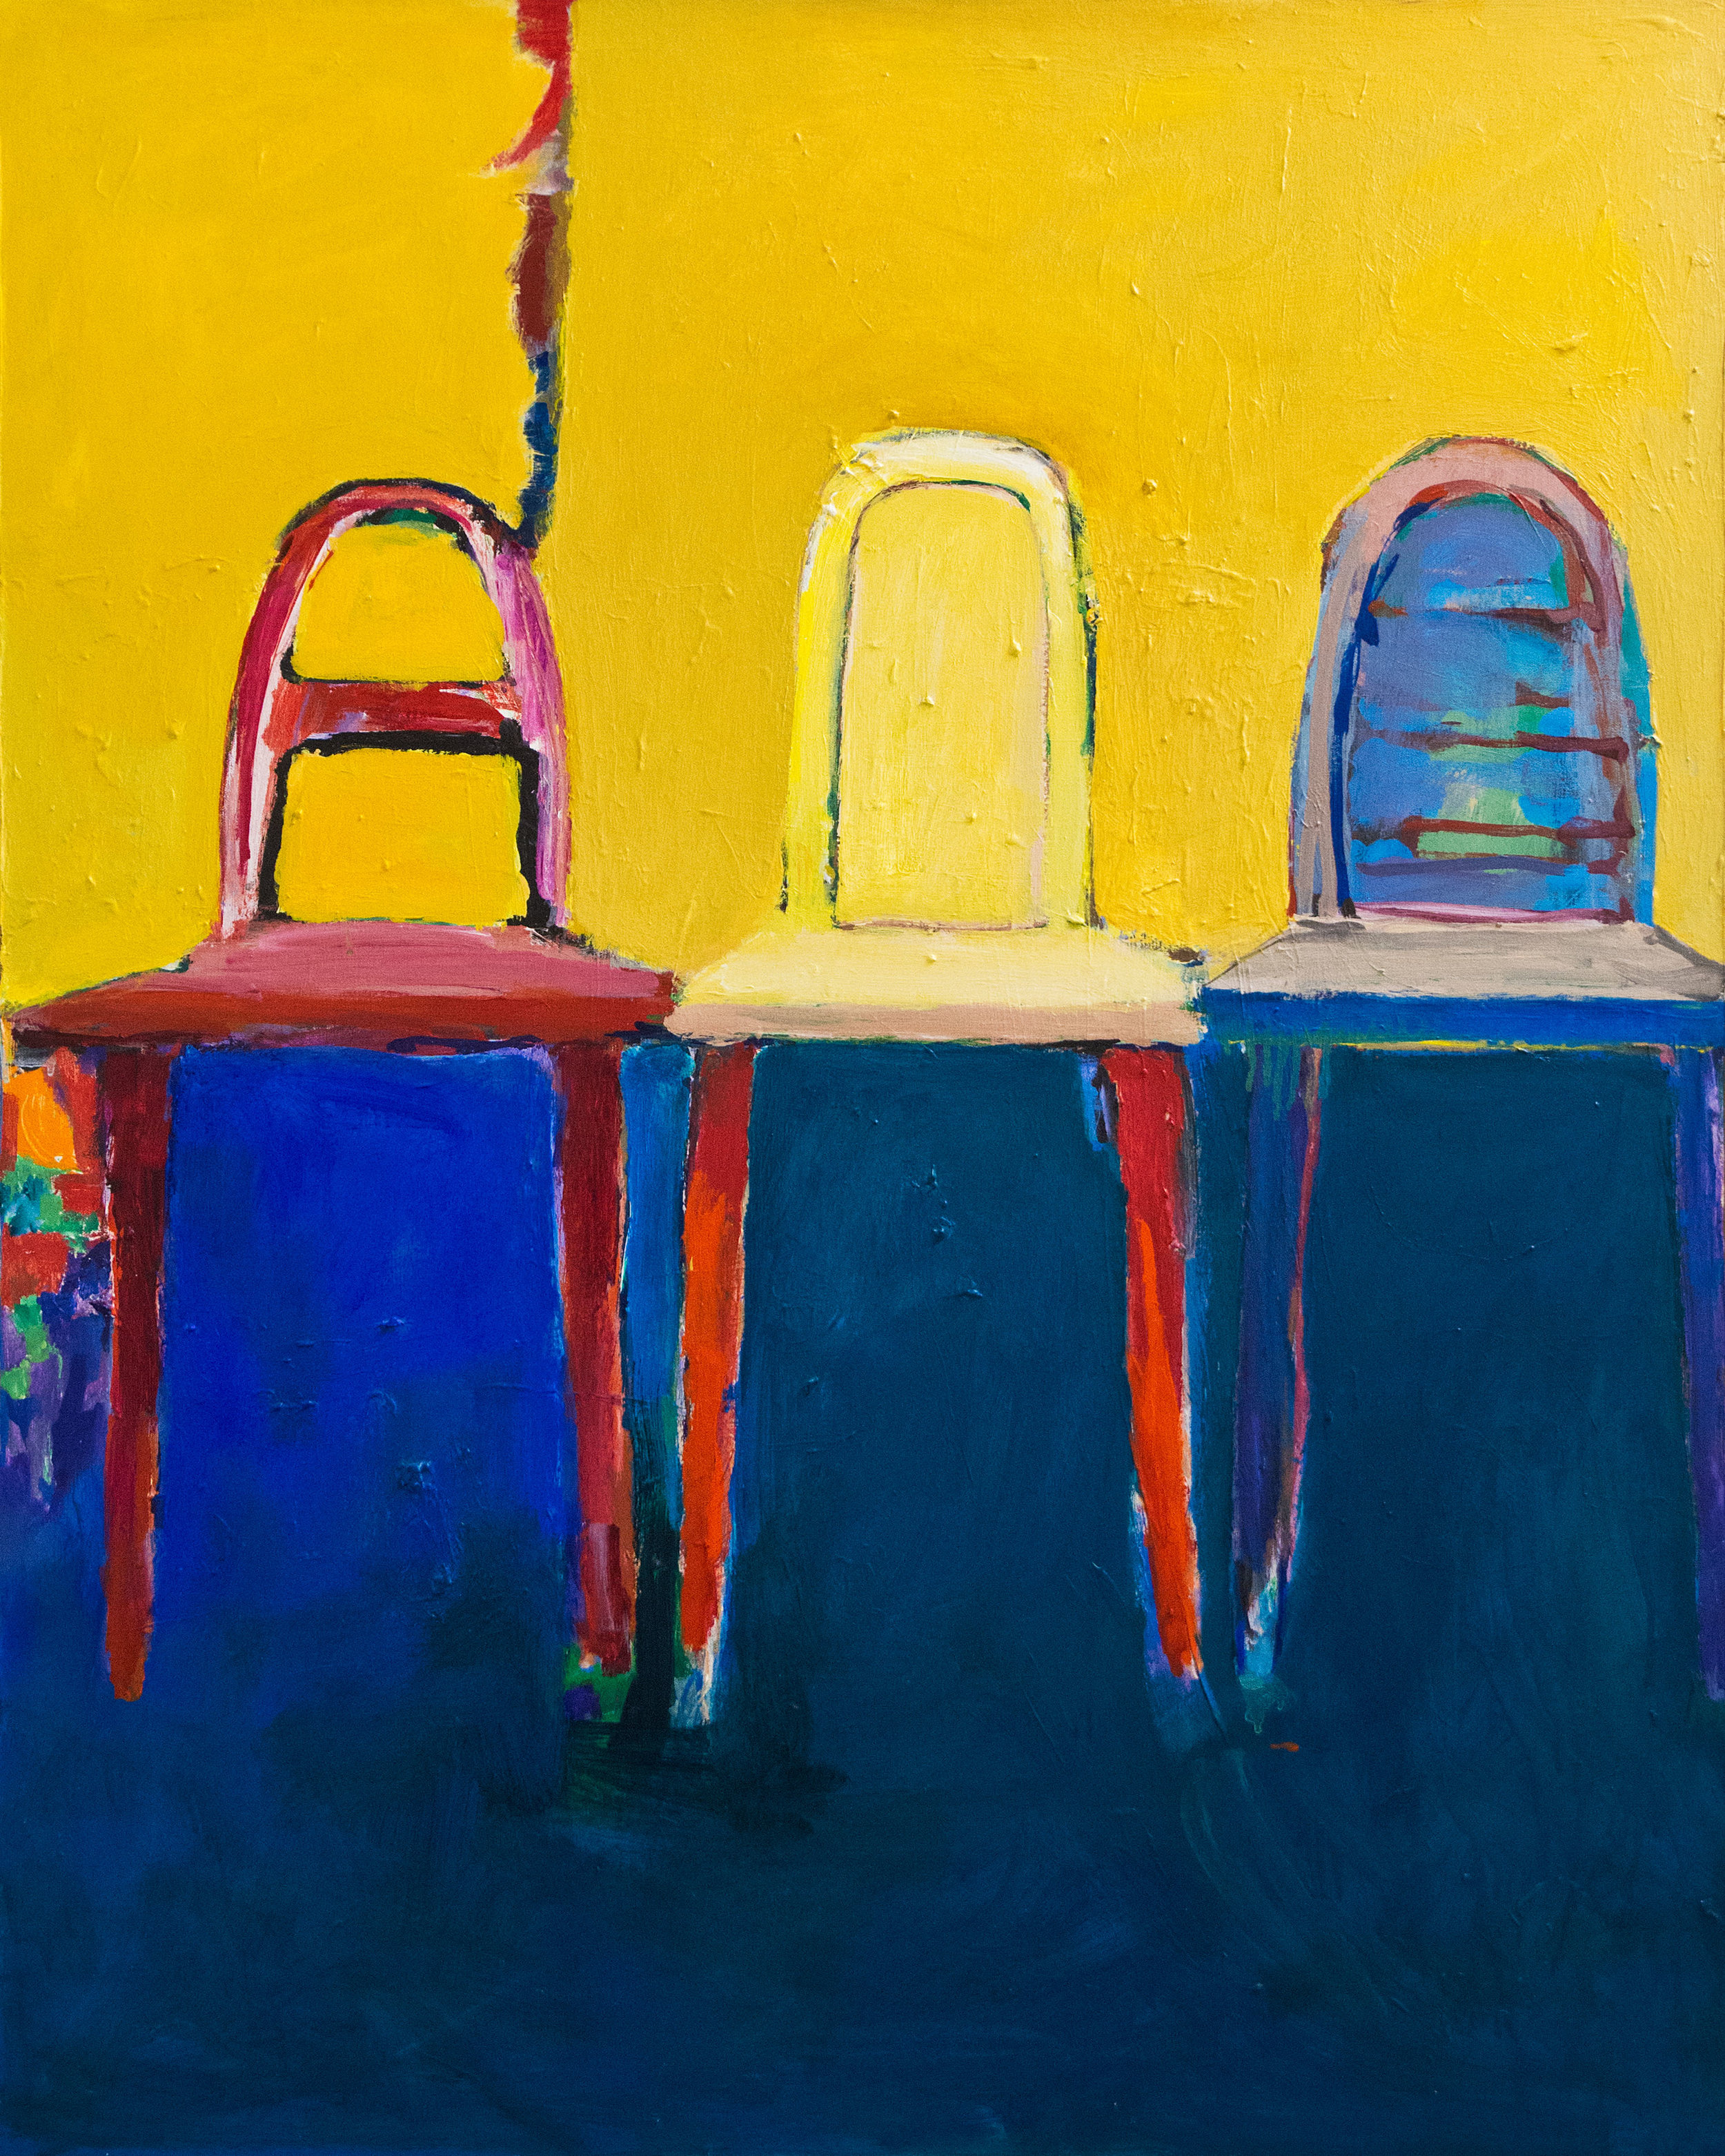 Three Chairs , 1998. Acrylic on canvas, 48 x 36 in. (122 x 91 cm.)